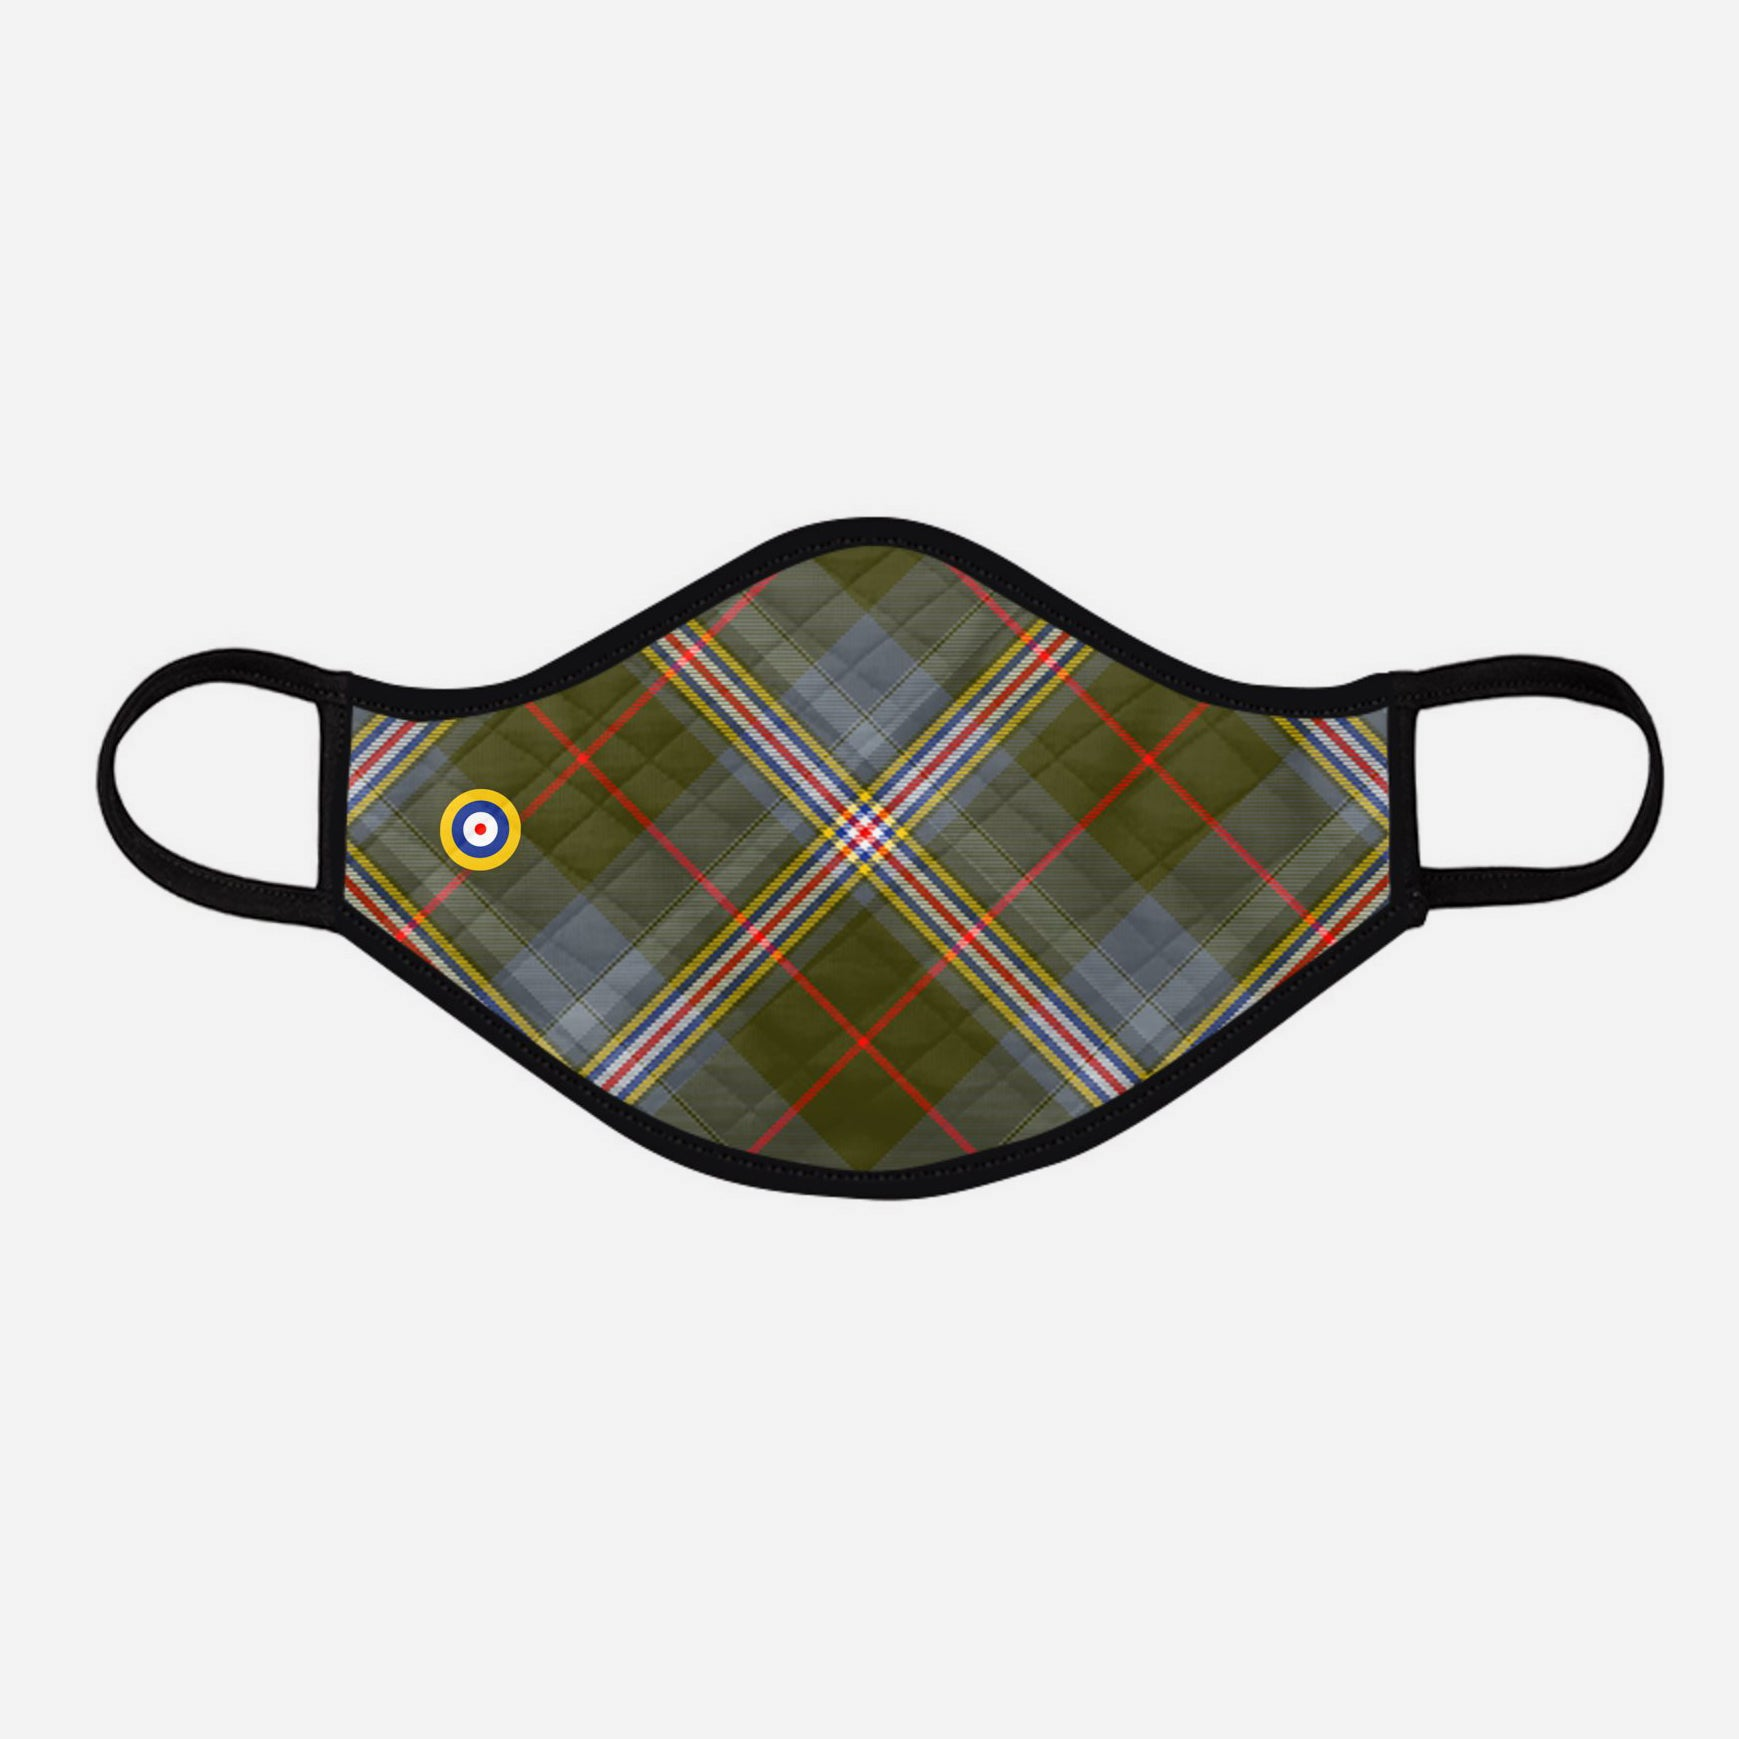 Red Lichtie Spitfire EP121 Montrose Air Station Heritage Centre Tartan custom printed face mask - Large with badge - by the Steven Patrick Sim Tartan Artisan - Stevie Tartan Guy Arbroath, Scotland with Nicola Sturgeon - mixed pack of 4 or 2